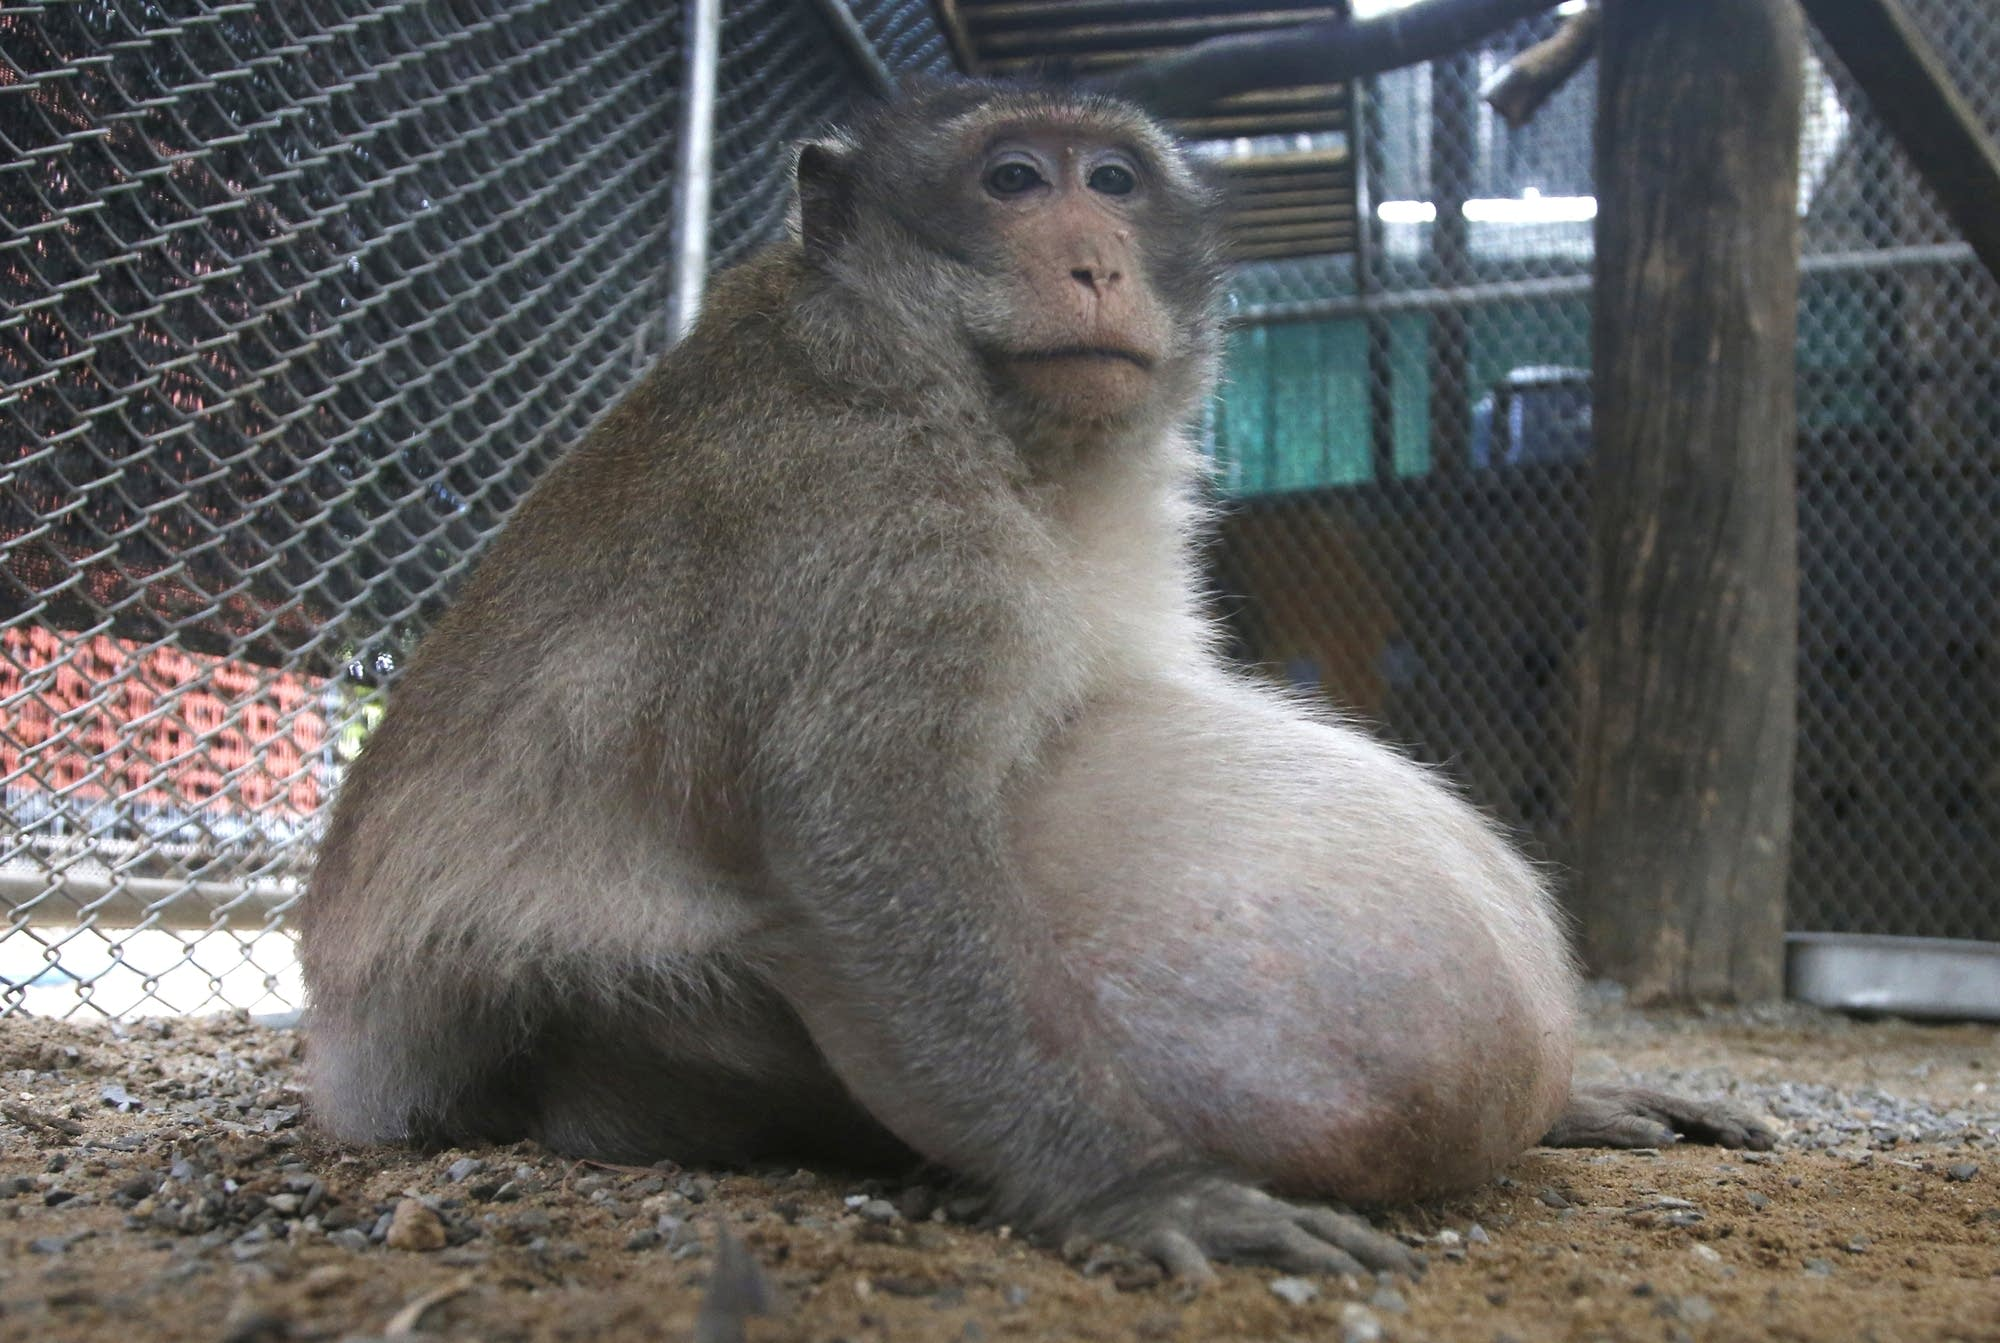 A wild obese macaque, named